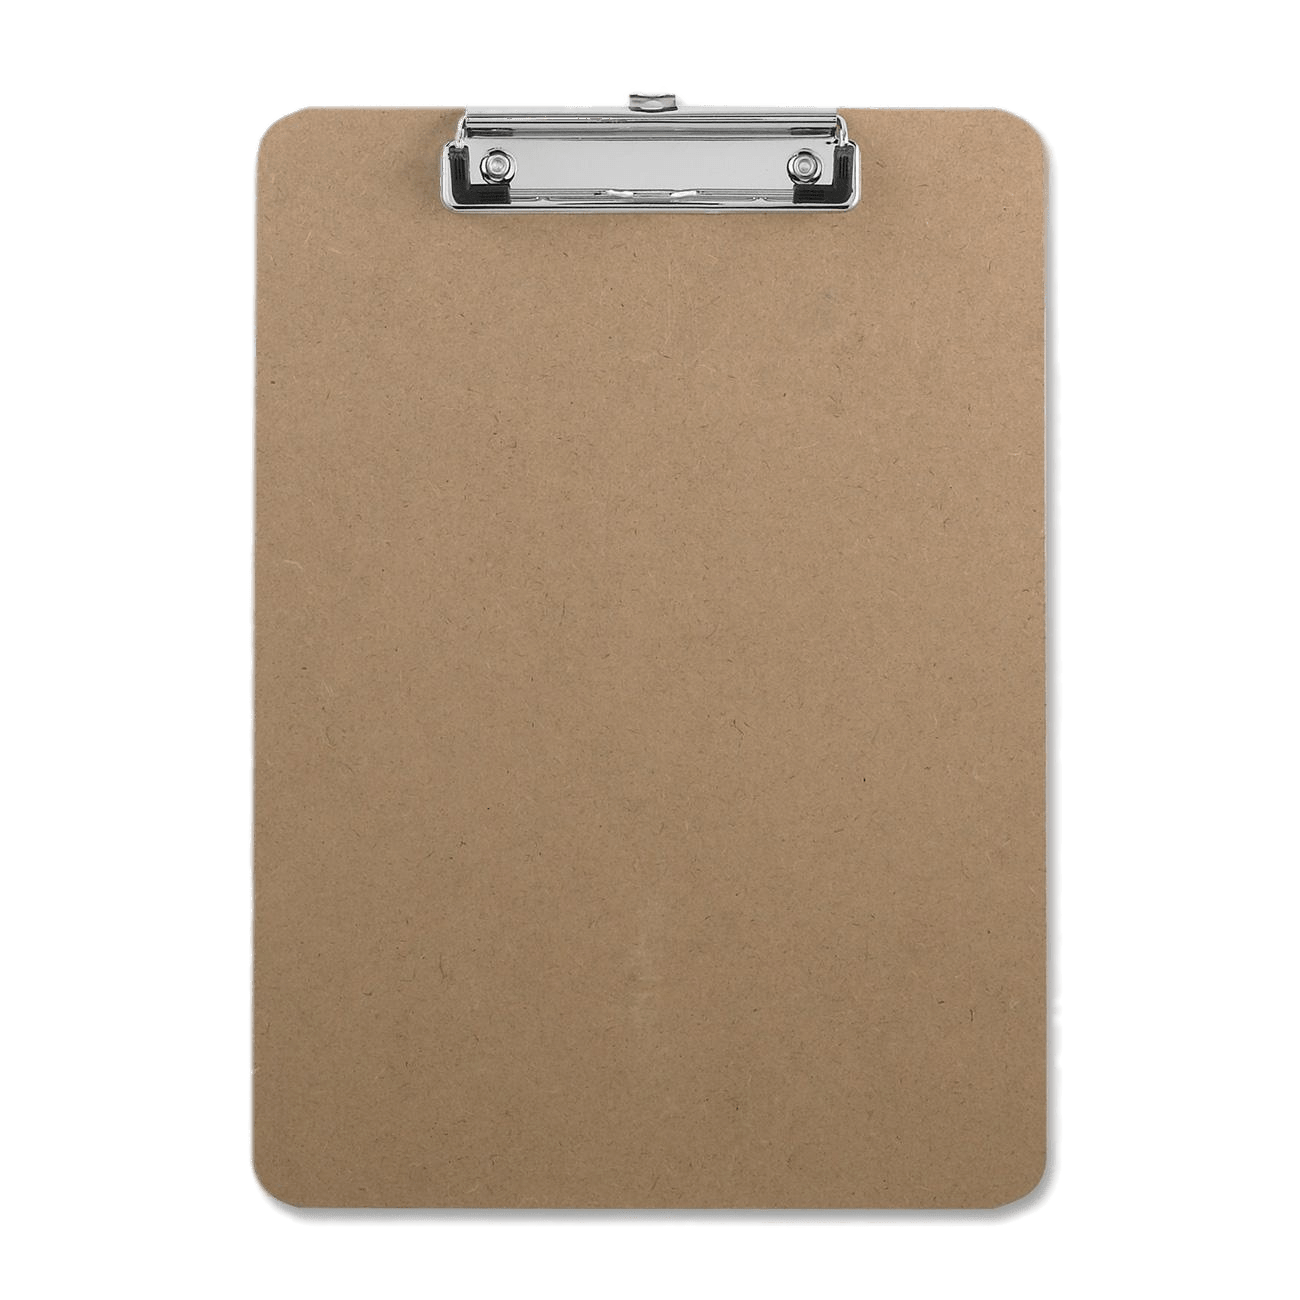 Clipboard png transparent. Brown stickpng